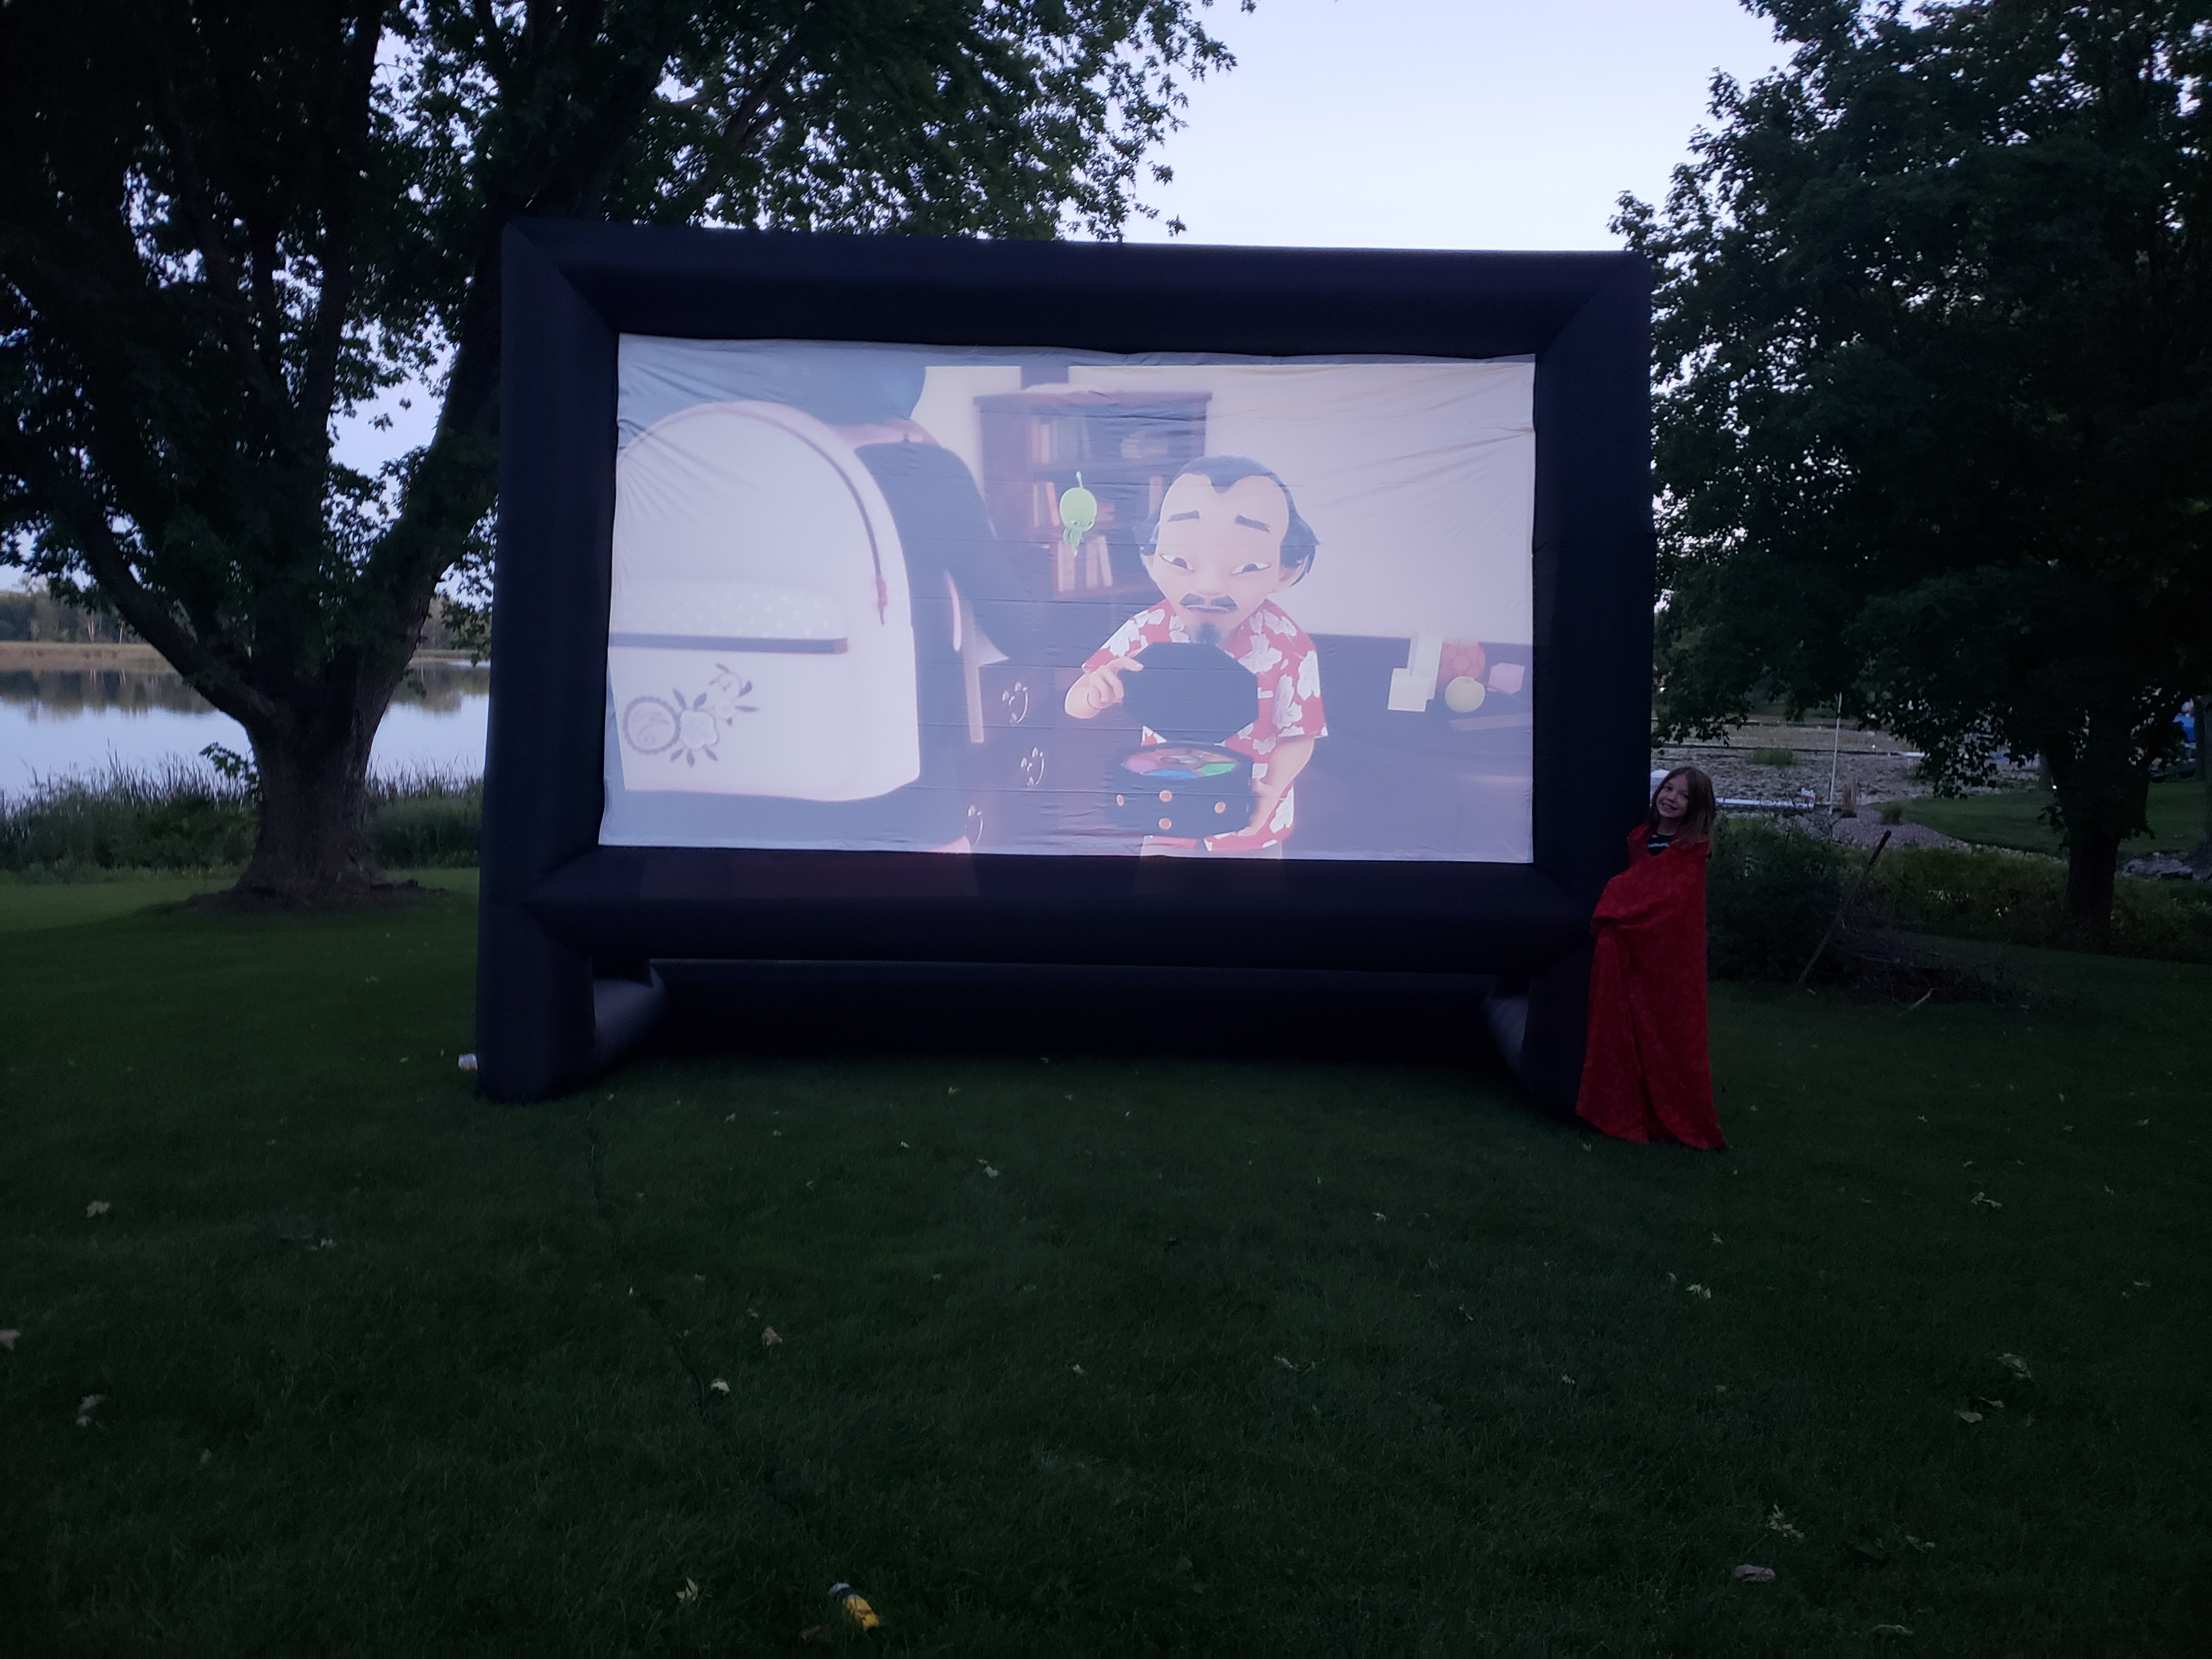 Our daughter Lily standing by the blow-up screen during our test-run at the lake this past Sunday.